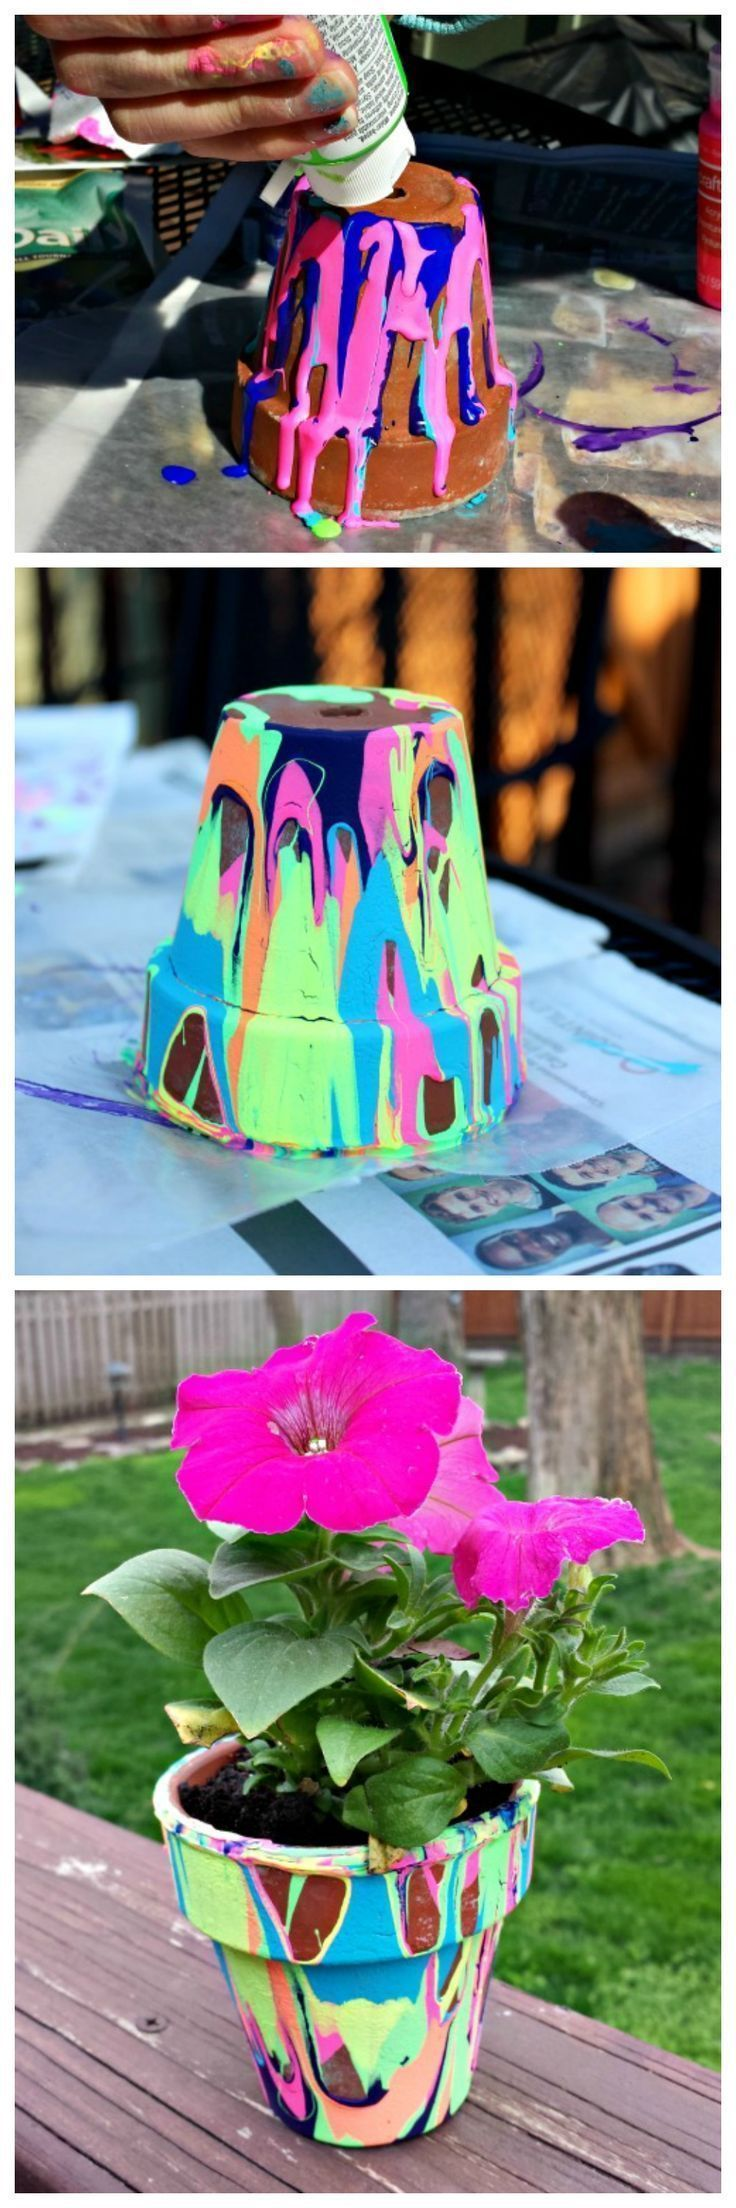 Best crafts for 8 yr old girl - Craft Ideas For Kids Mothers Day Or Teacher Appreciation Gift